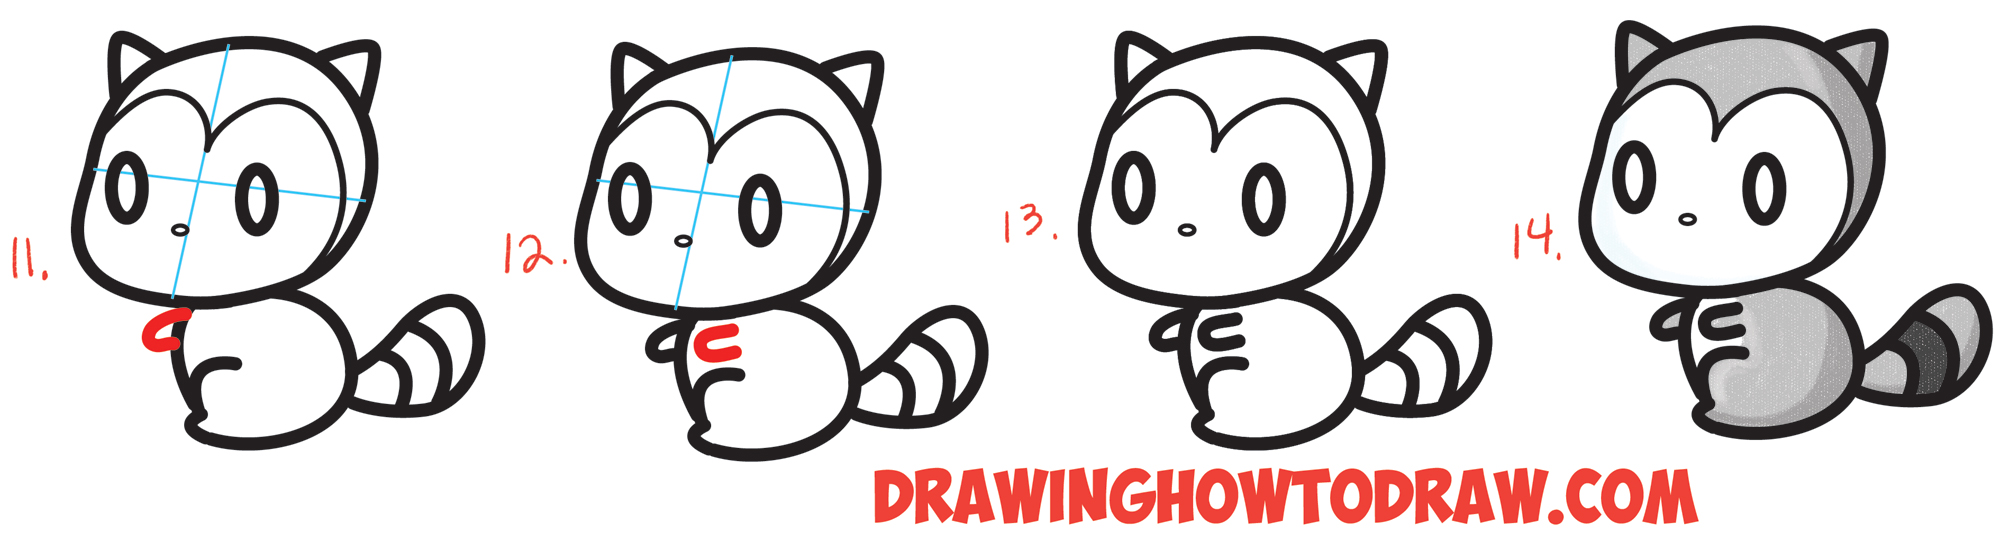 how to draw a cute chibi kawaii cartoon 3 shape racoon